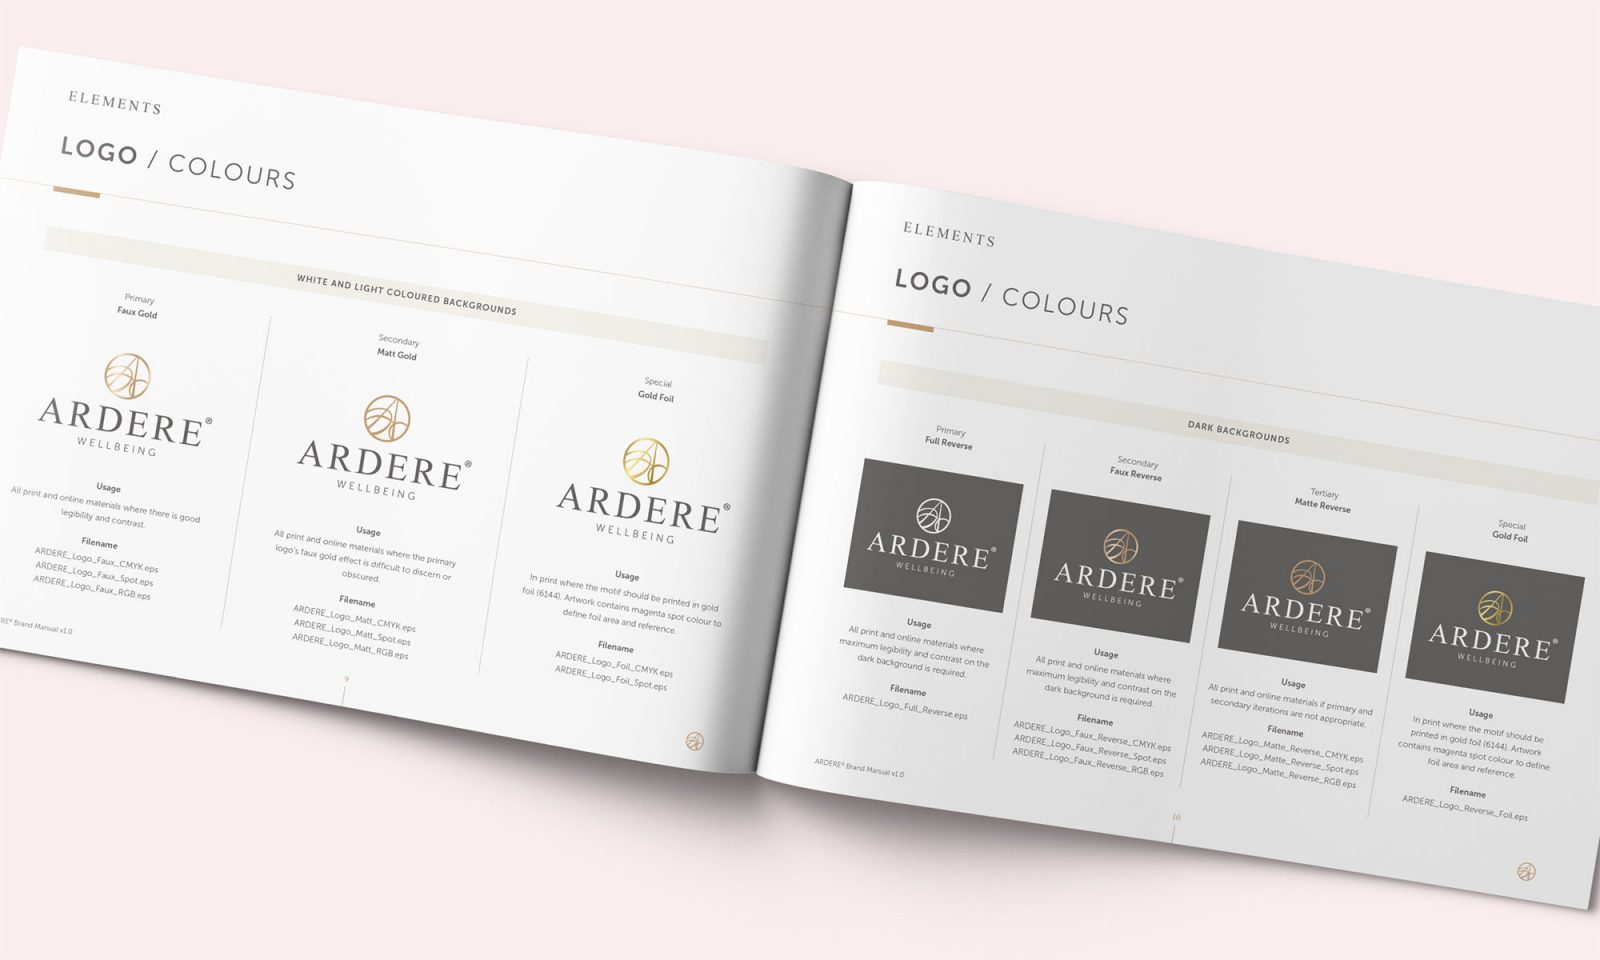 Ardere brand manual spread showing logo variants